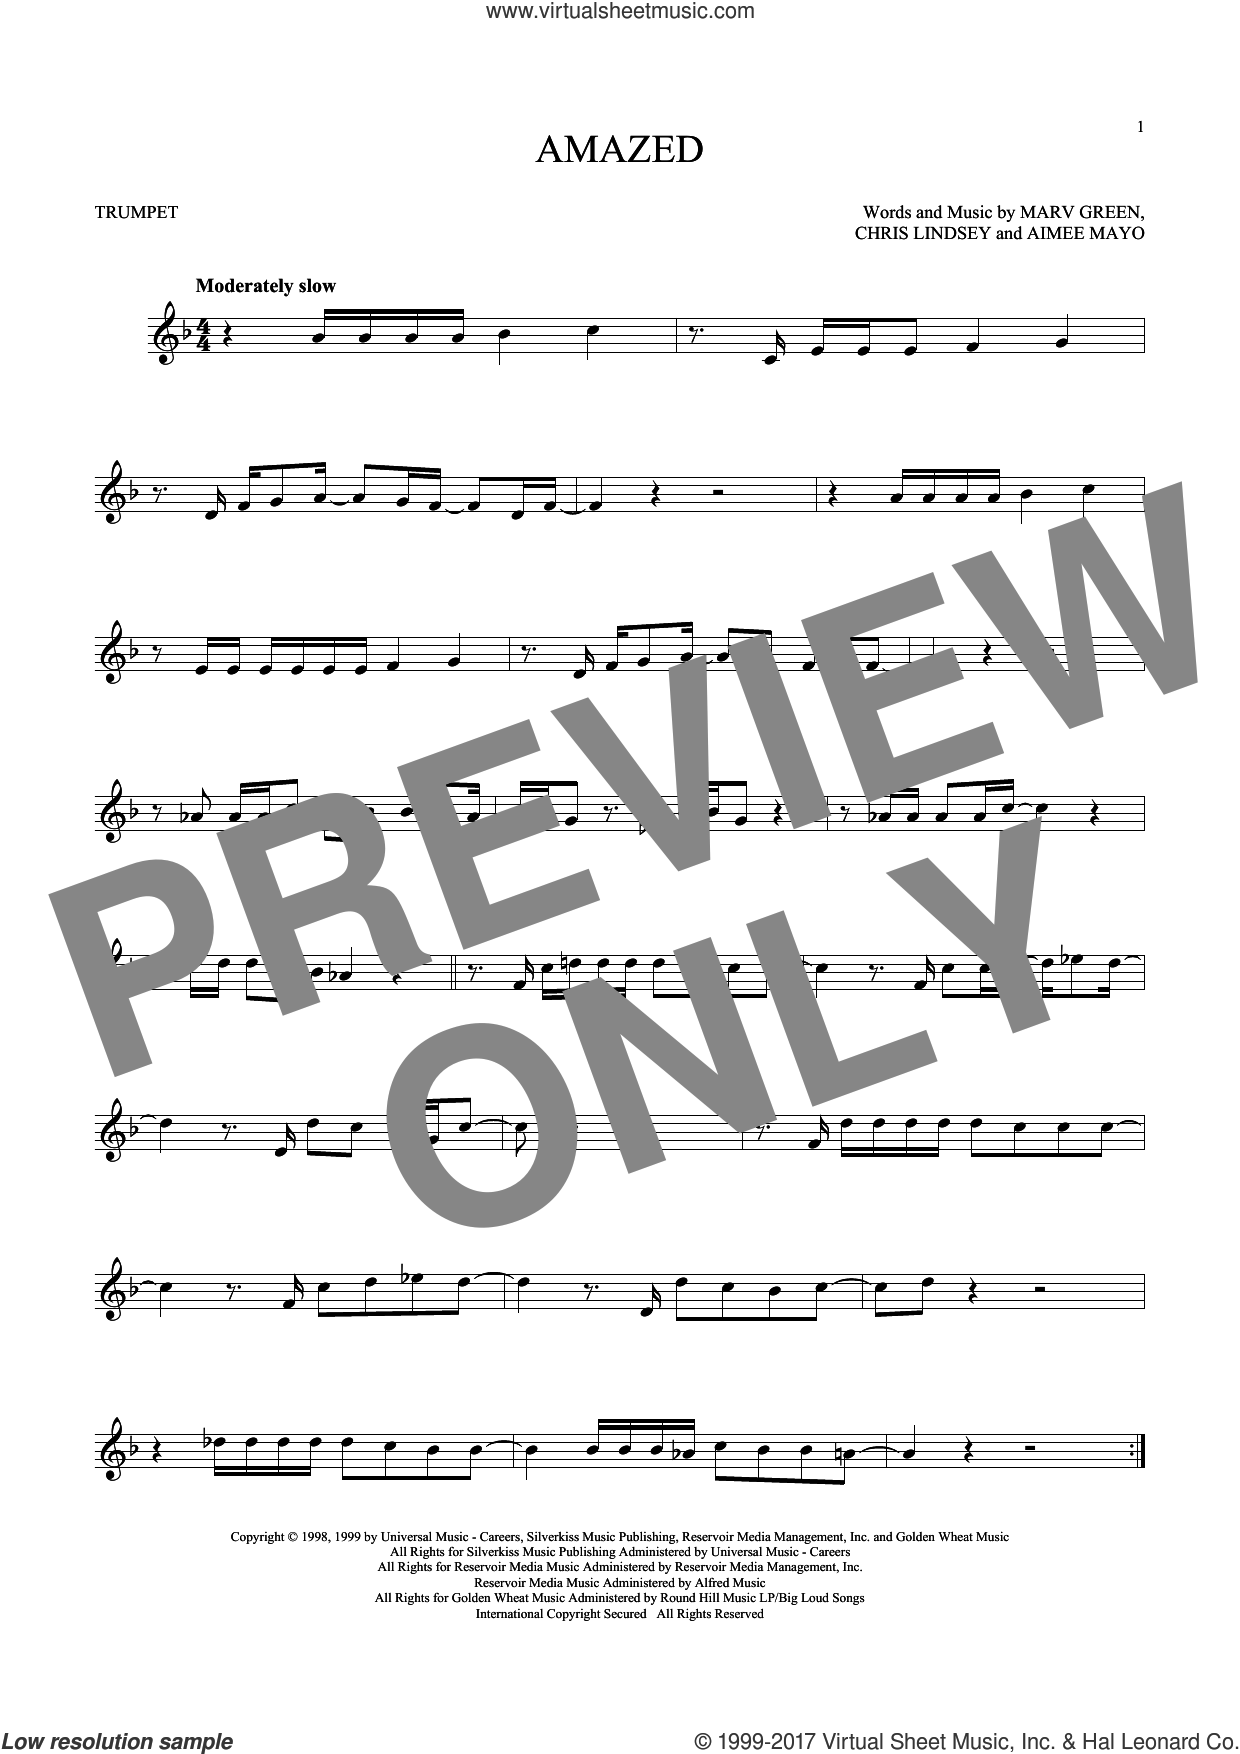 Amazed sheet music for trumpet solo by Lonestar, Aimee Mayo, Chris Lindsey and Marv Green, wedding score, intermediate skill level